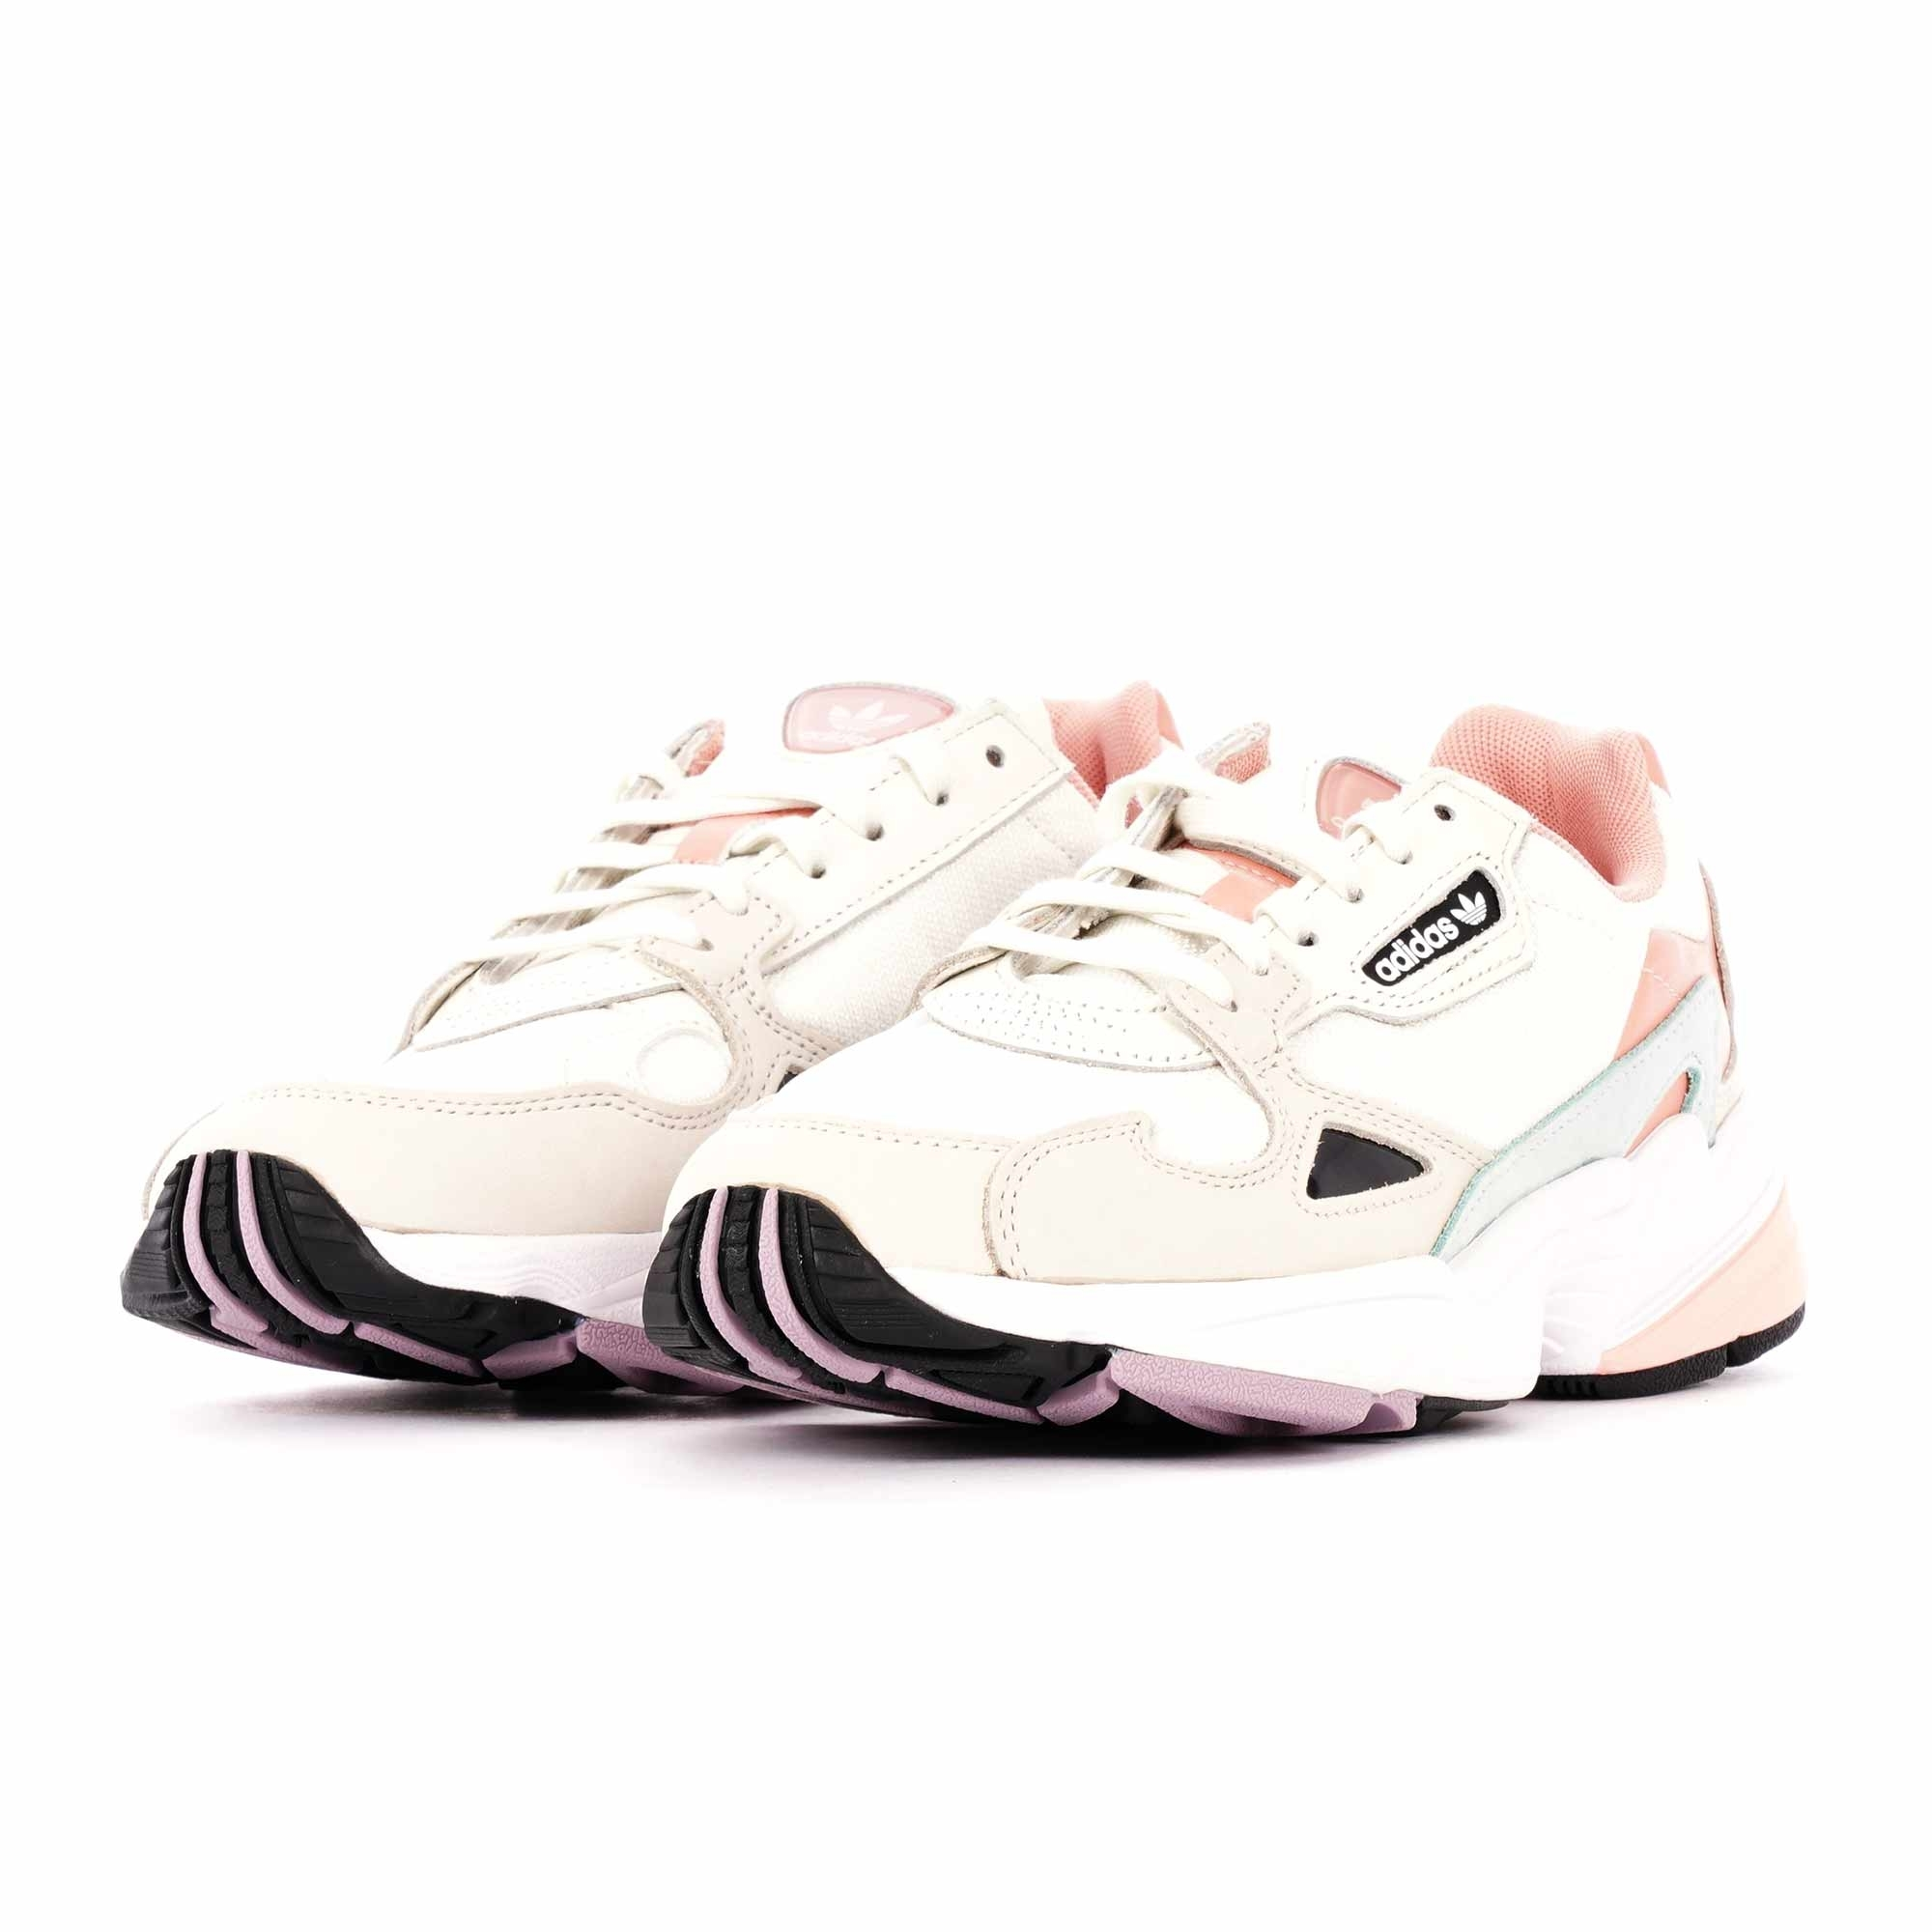 Falcon - White Tint, Raw White & Trace Pink